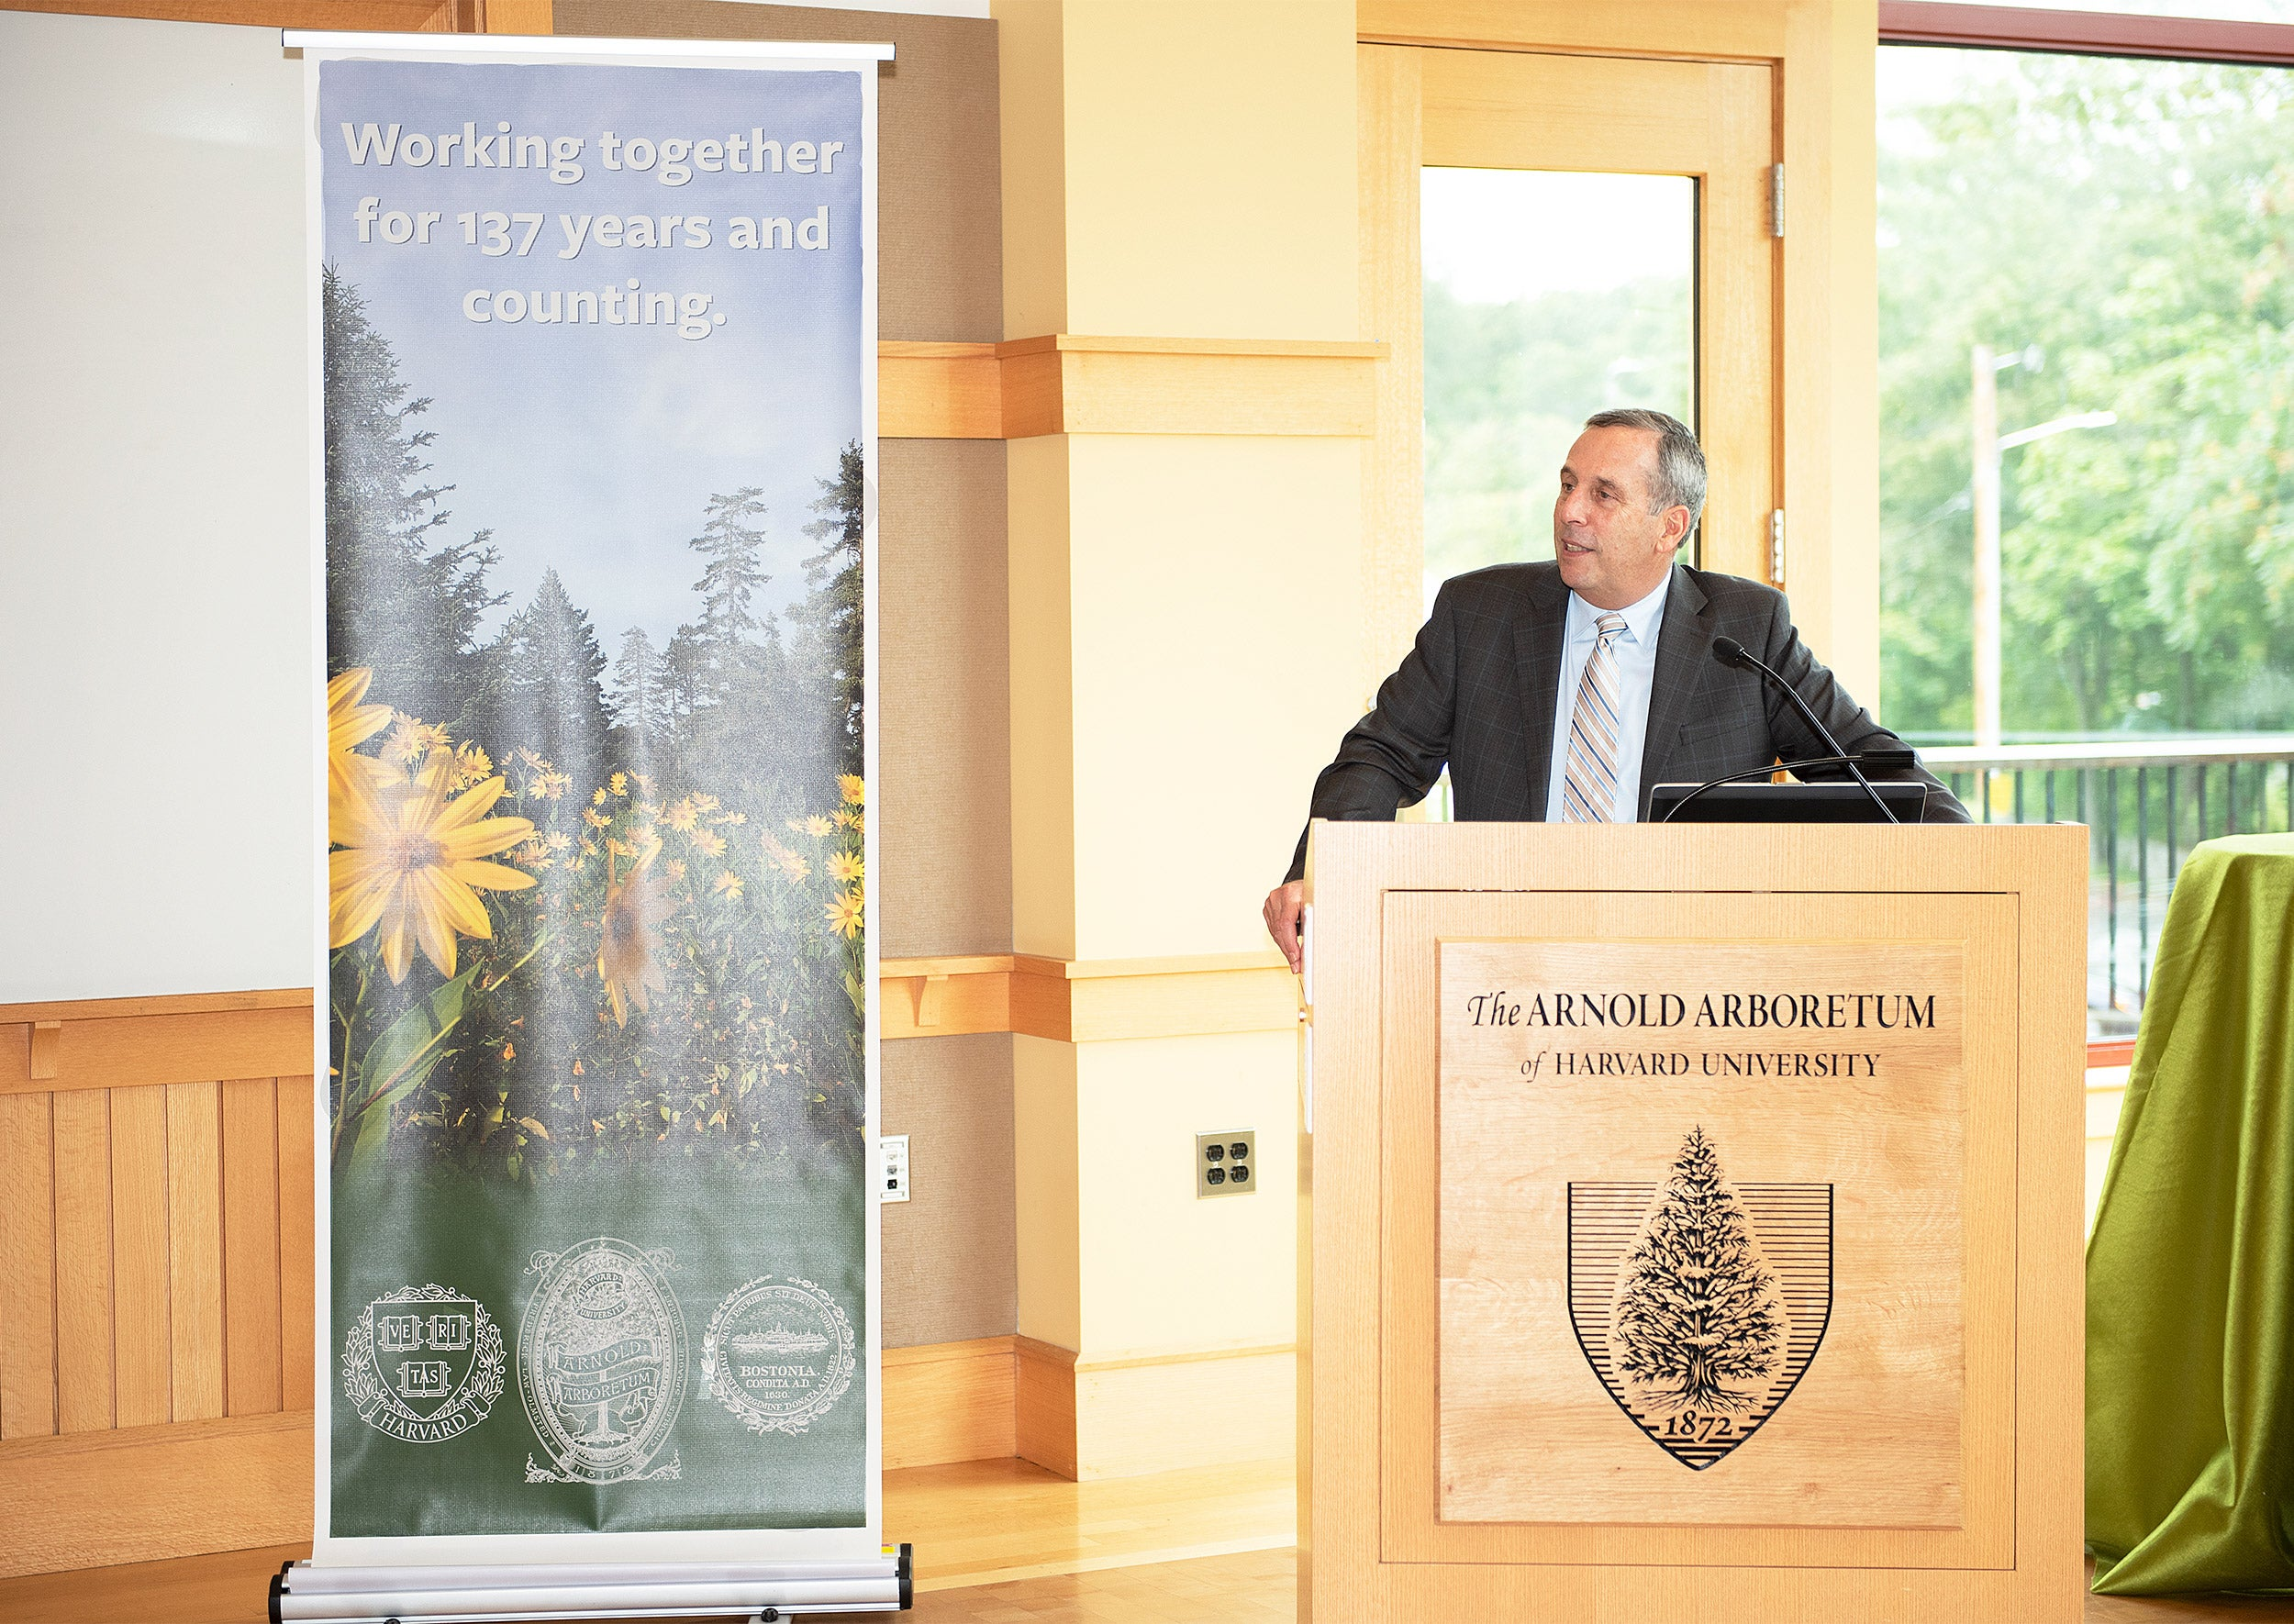 President Larry Bacow at Arboretum